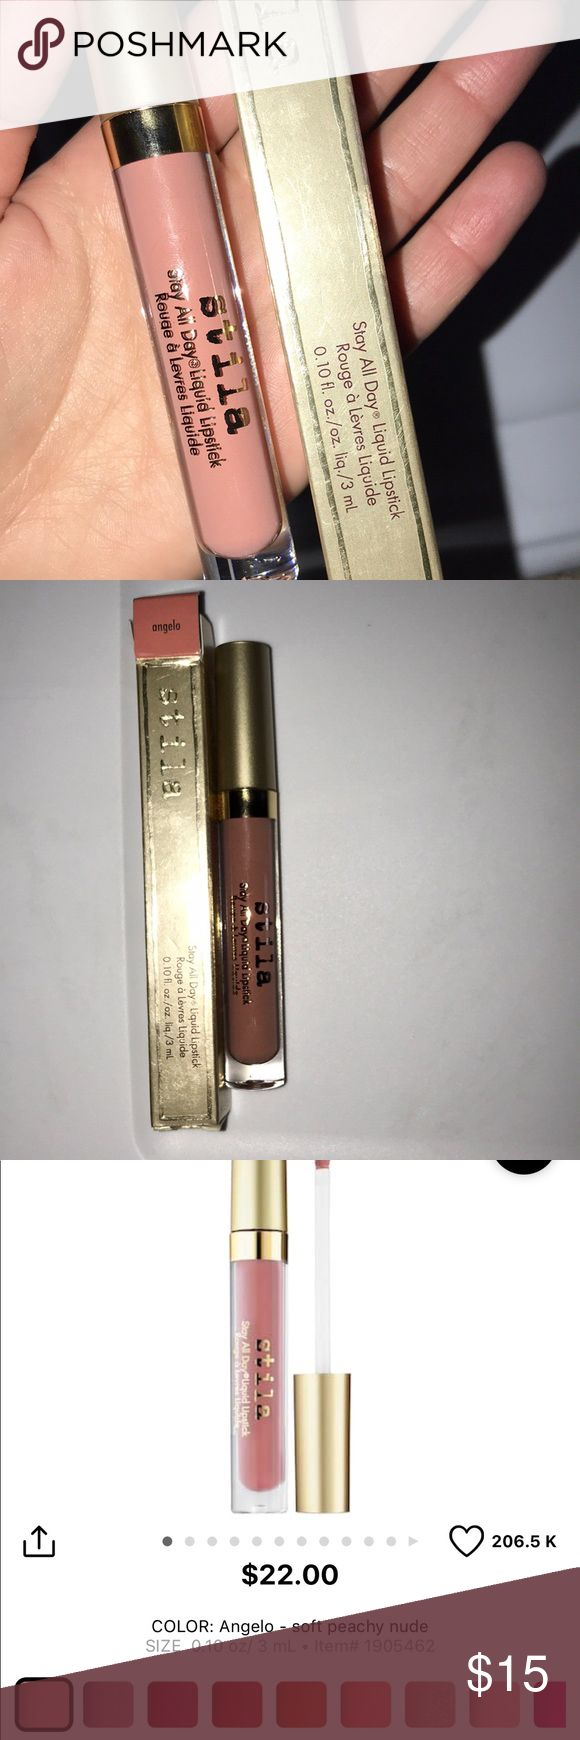 New stila matte liquid lipstick NEw. In box. Shade Angelo.  💕 No trades please.  All make up listed is authentic.  Bundle more items for an even bigger discount off your total!! I simply own doubles of this and don't need both. 💕 Makeup Lipstick